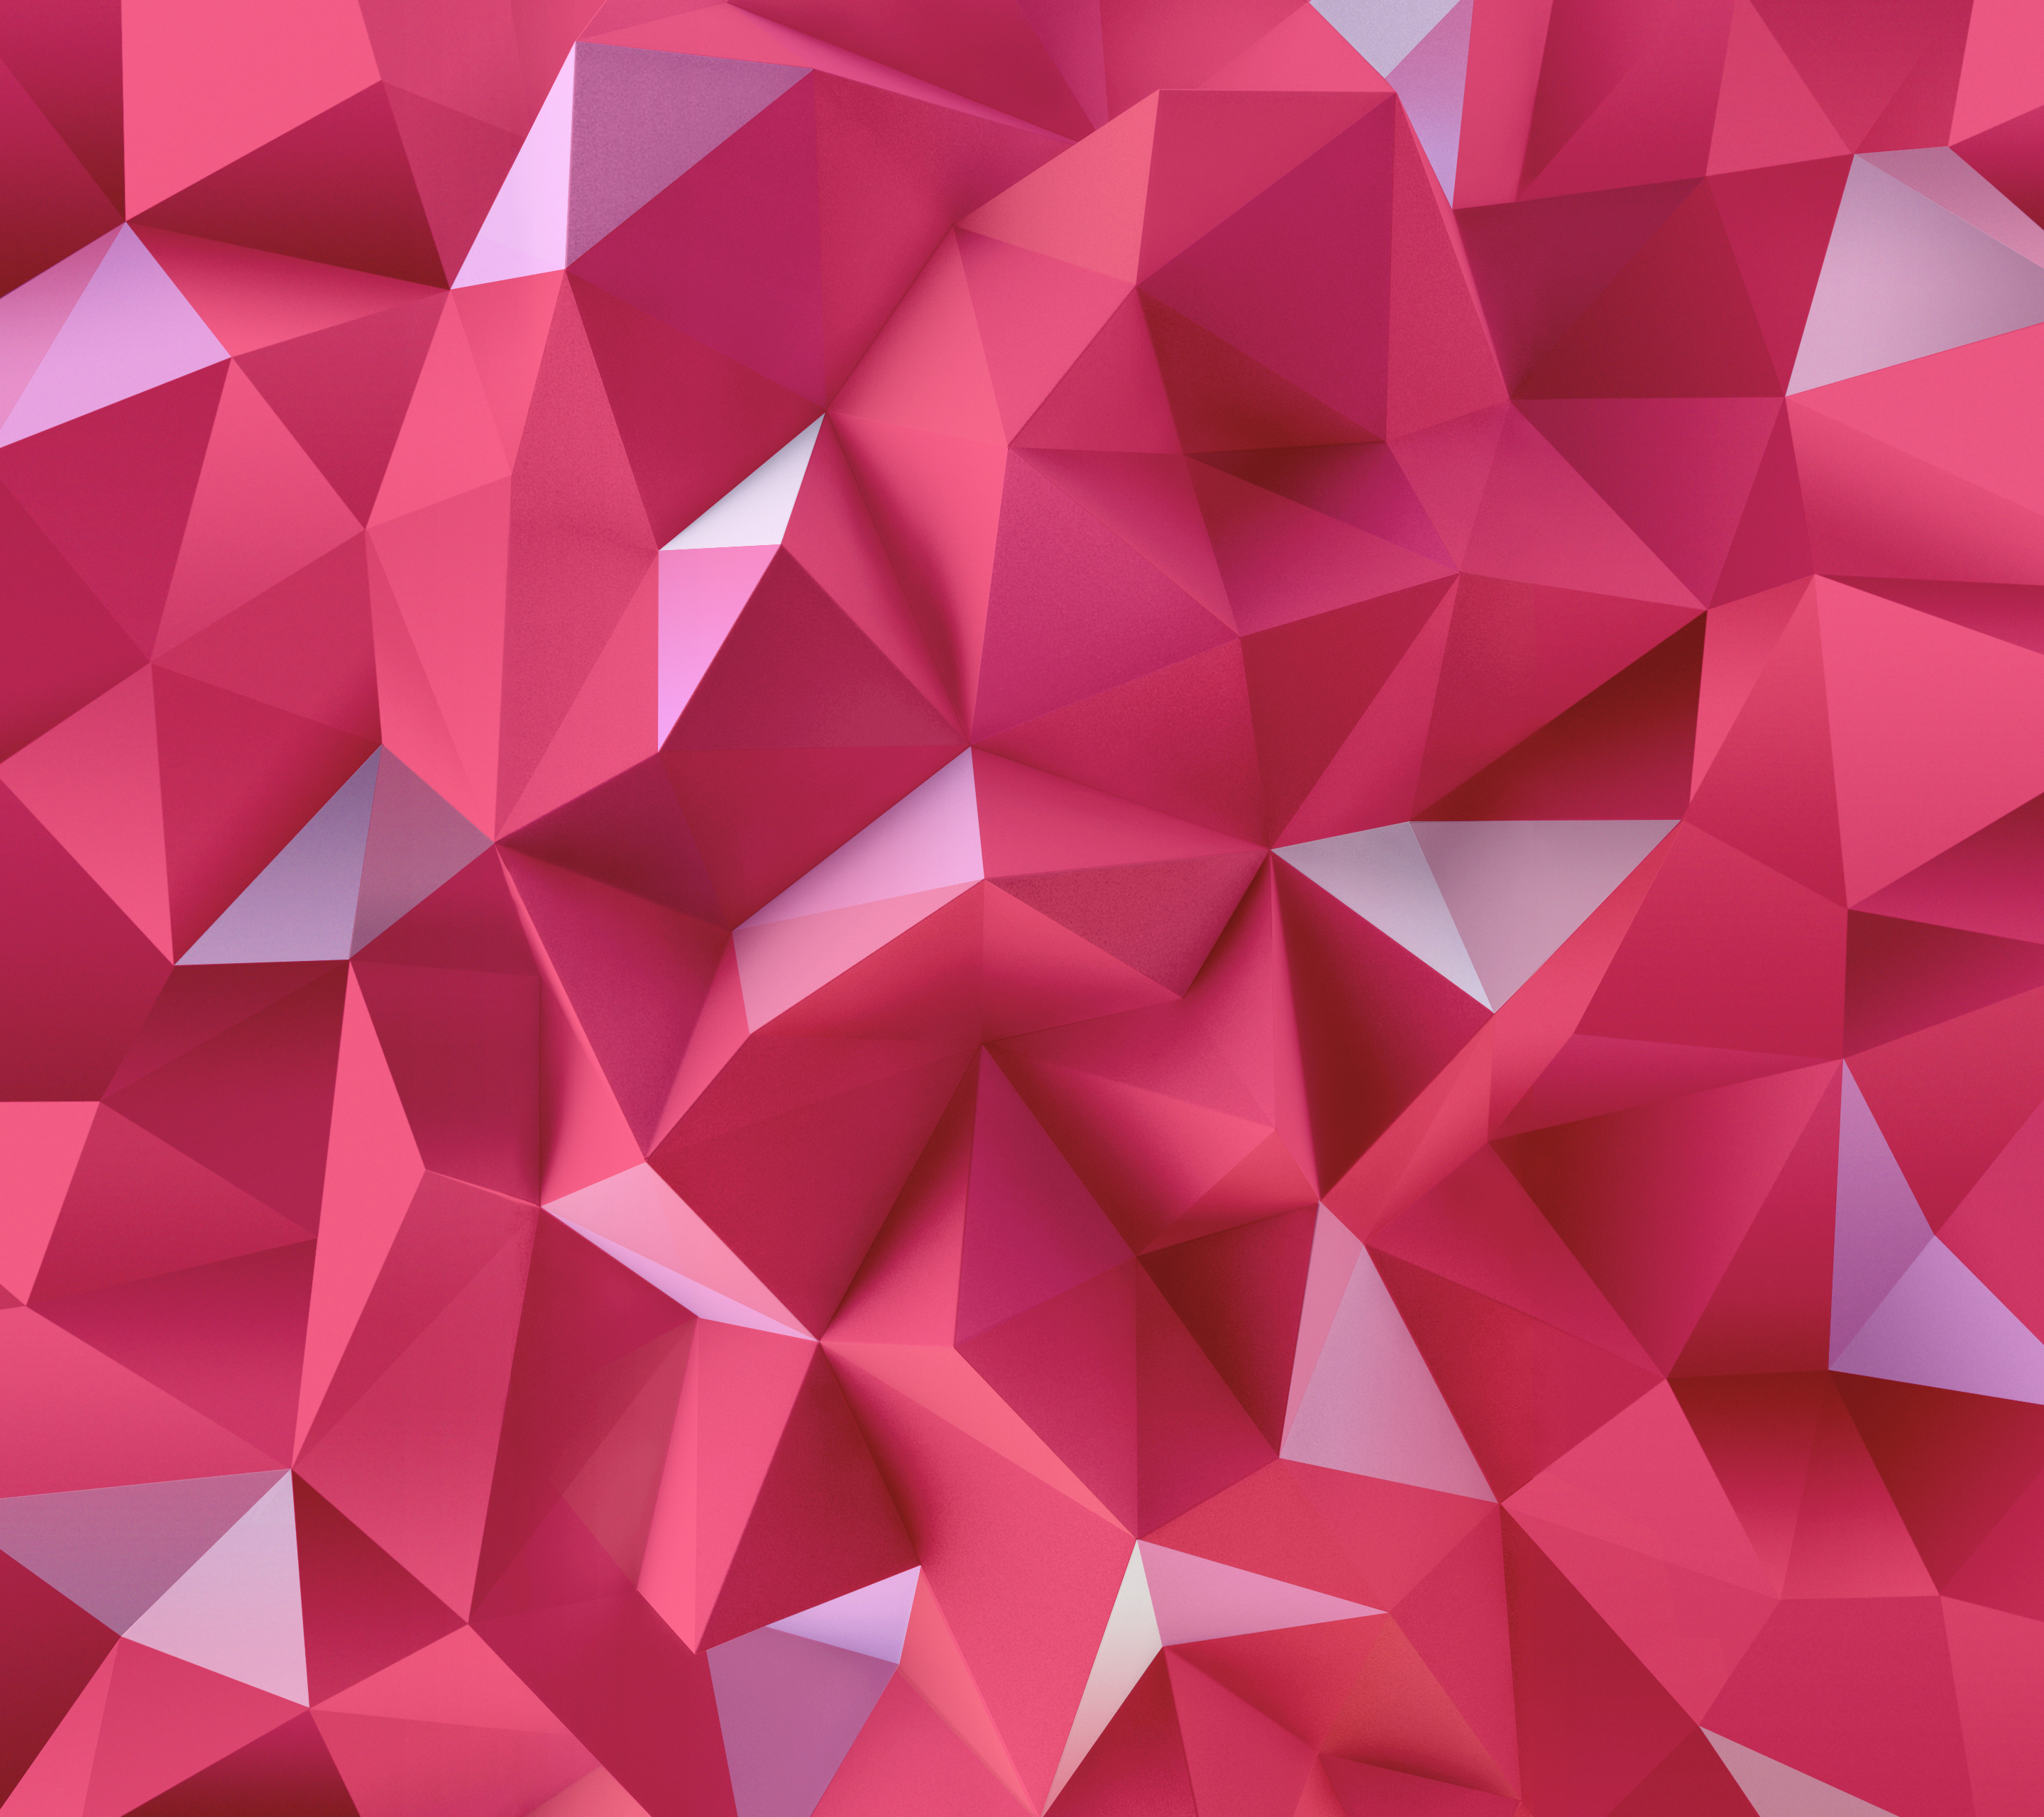 Iphone Wallpaper Pink: IPhone 6 / IPhone 6 Plus Wallpapers